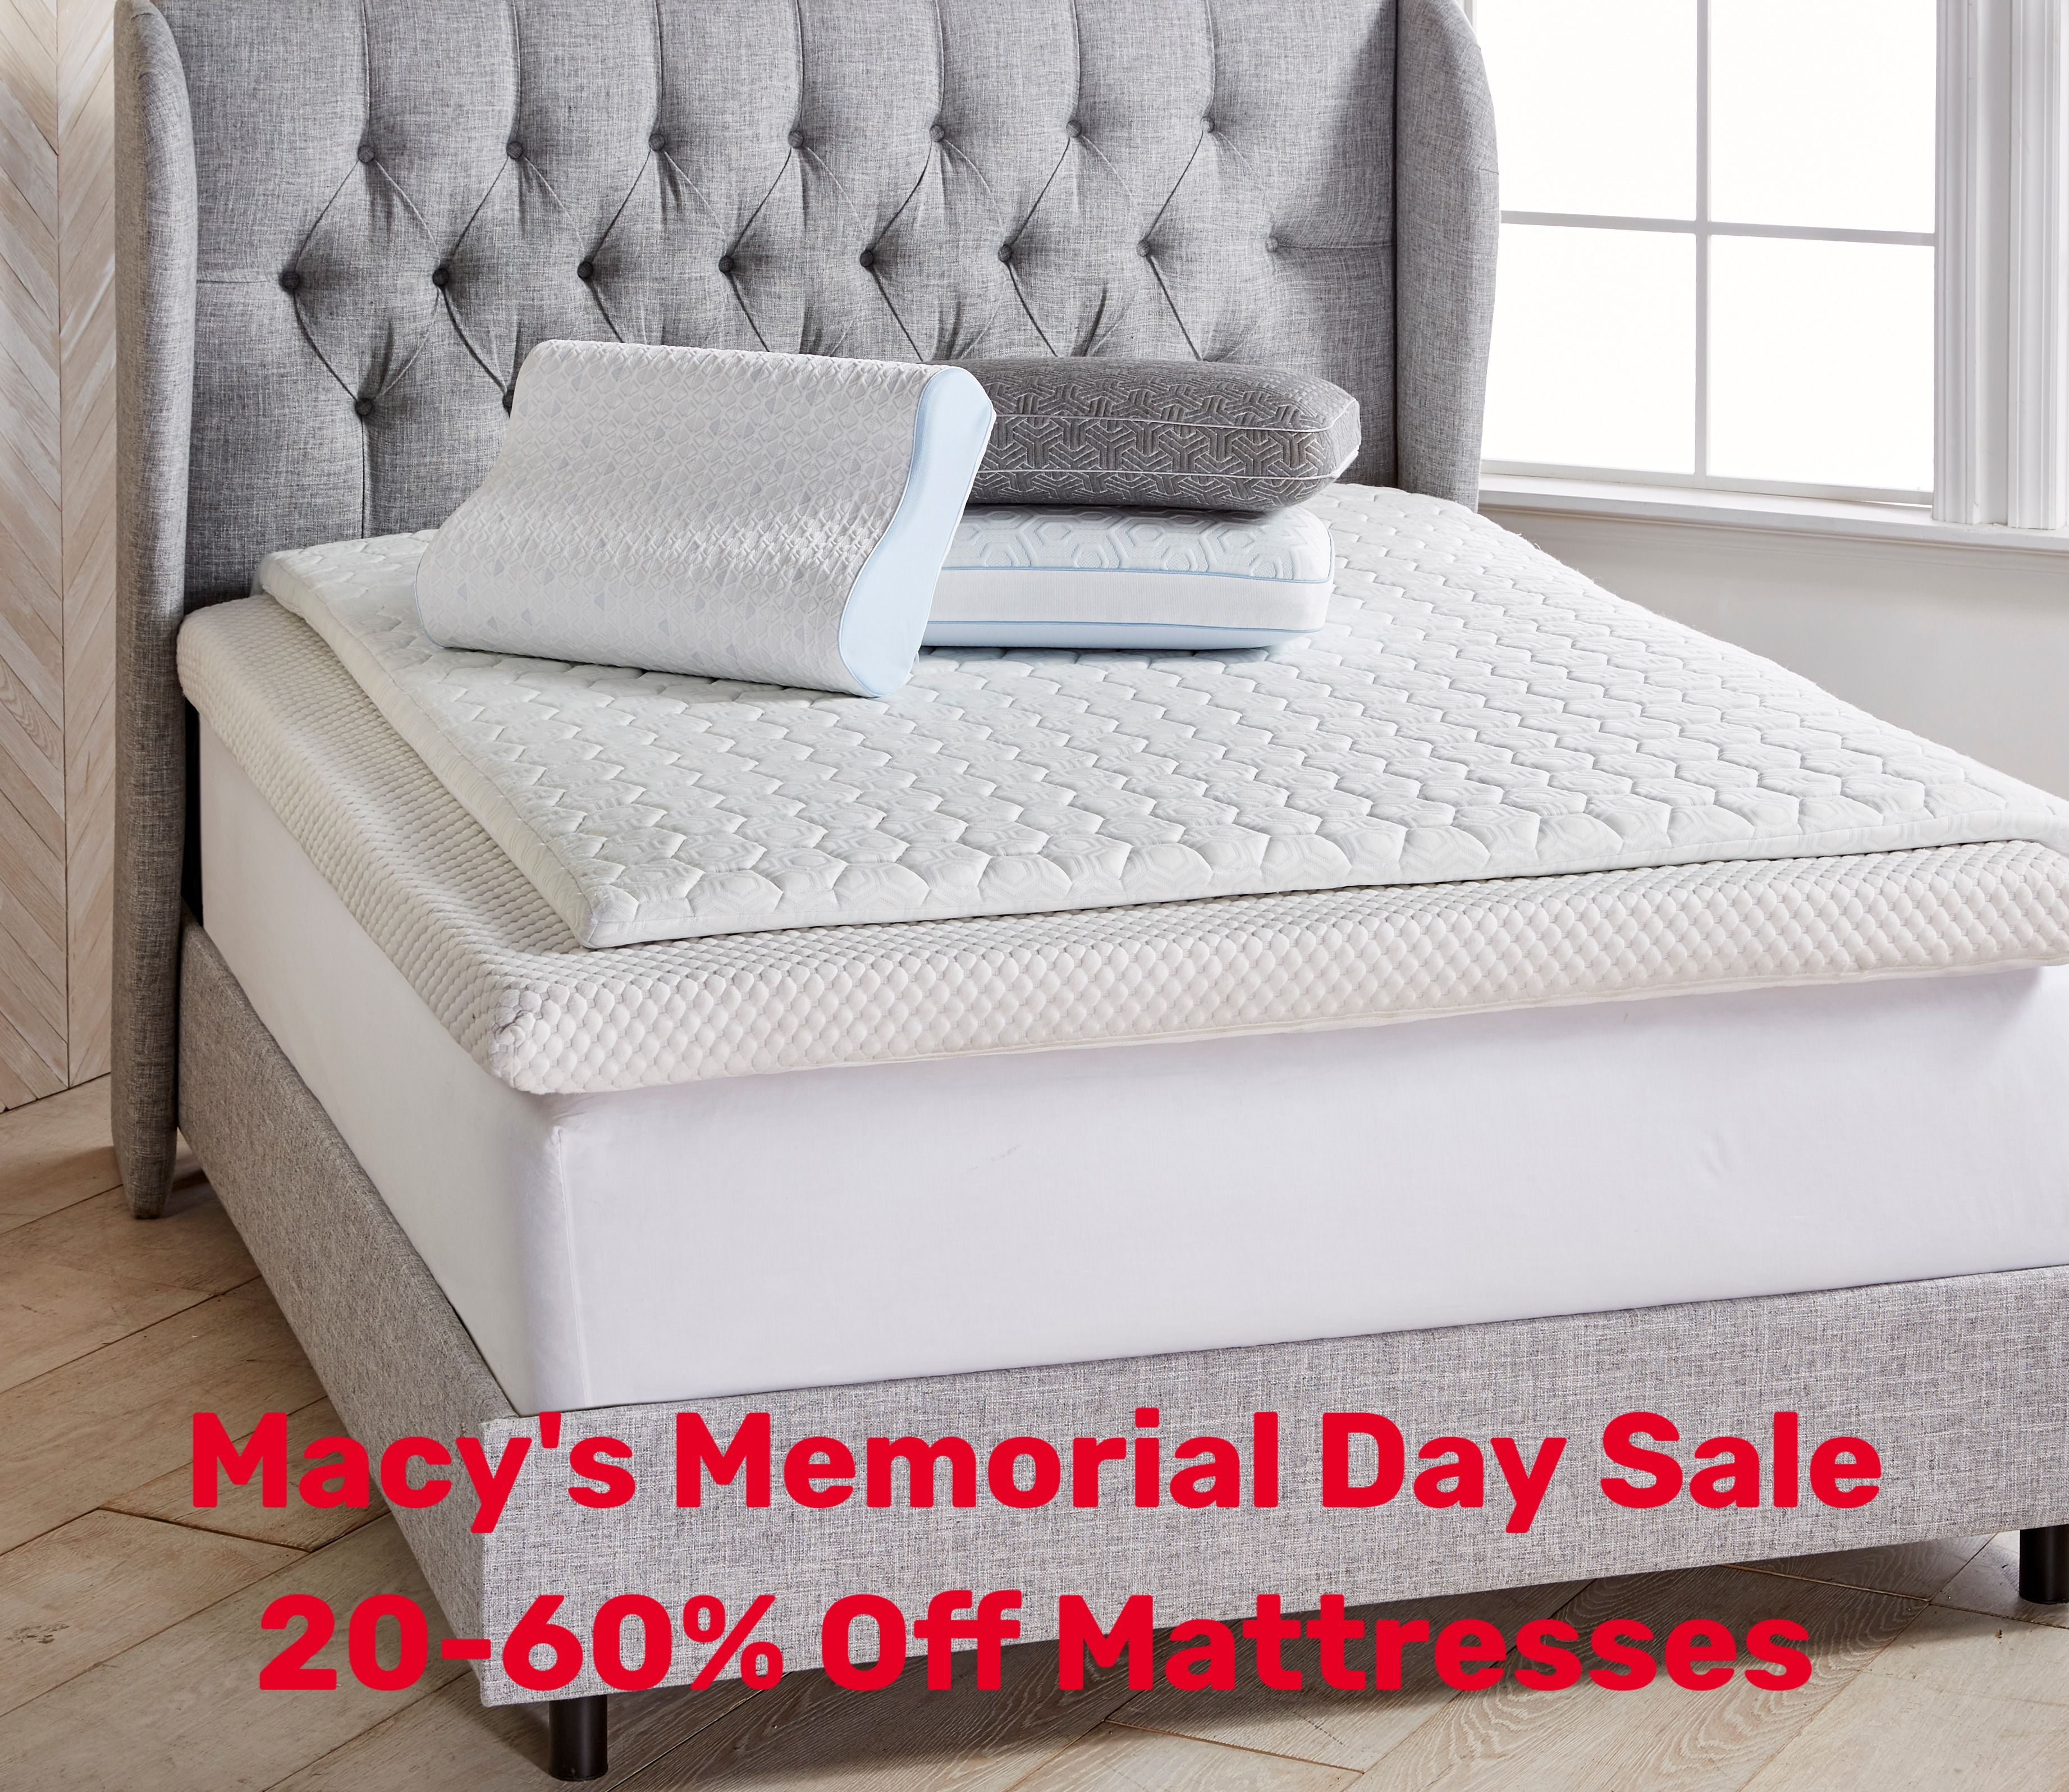 Shop Macy S Memorial Day Sale And Get Up To 60 Off Mattresses And